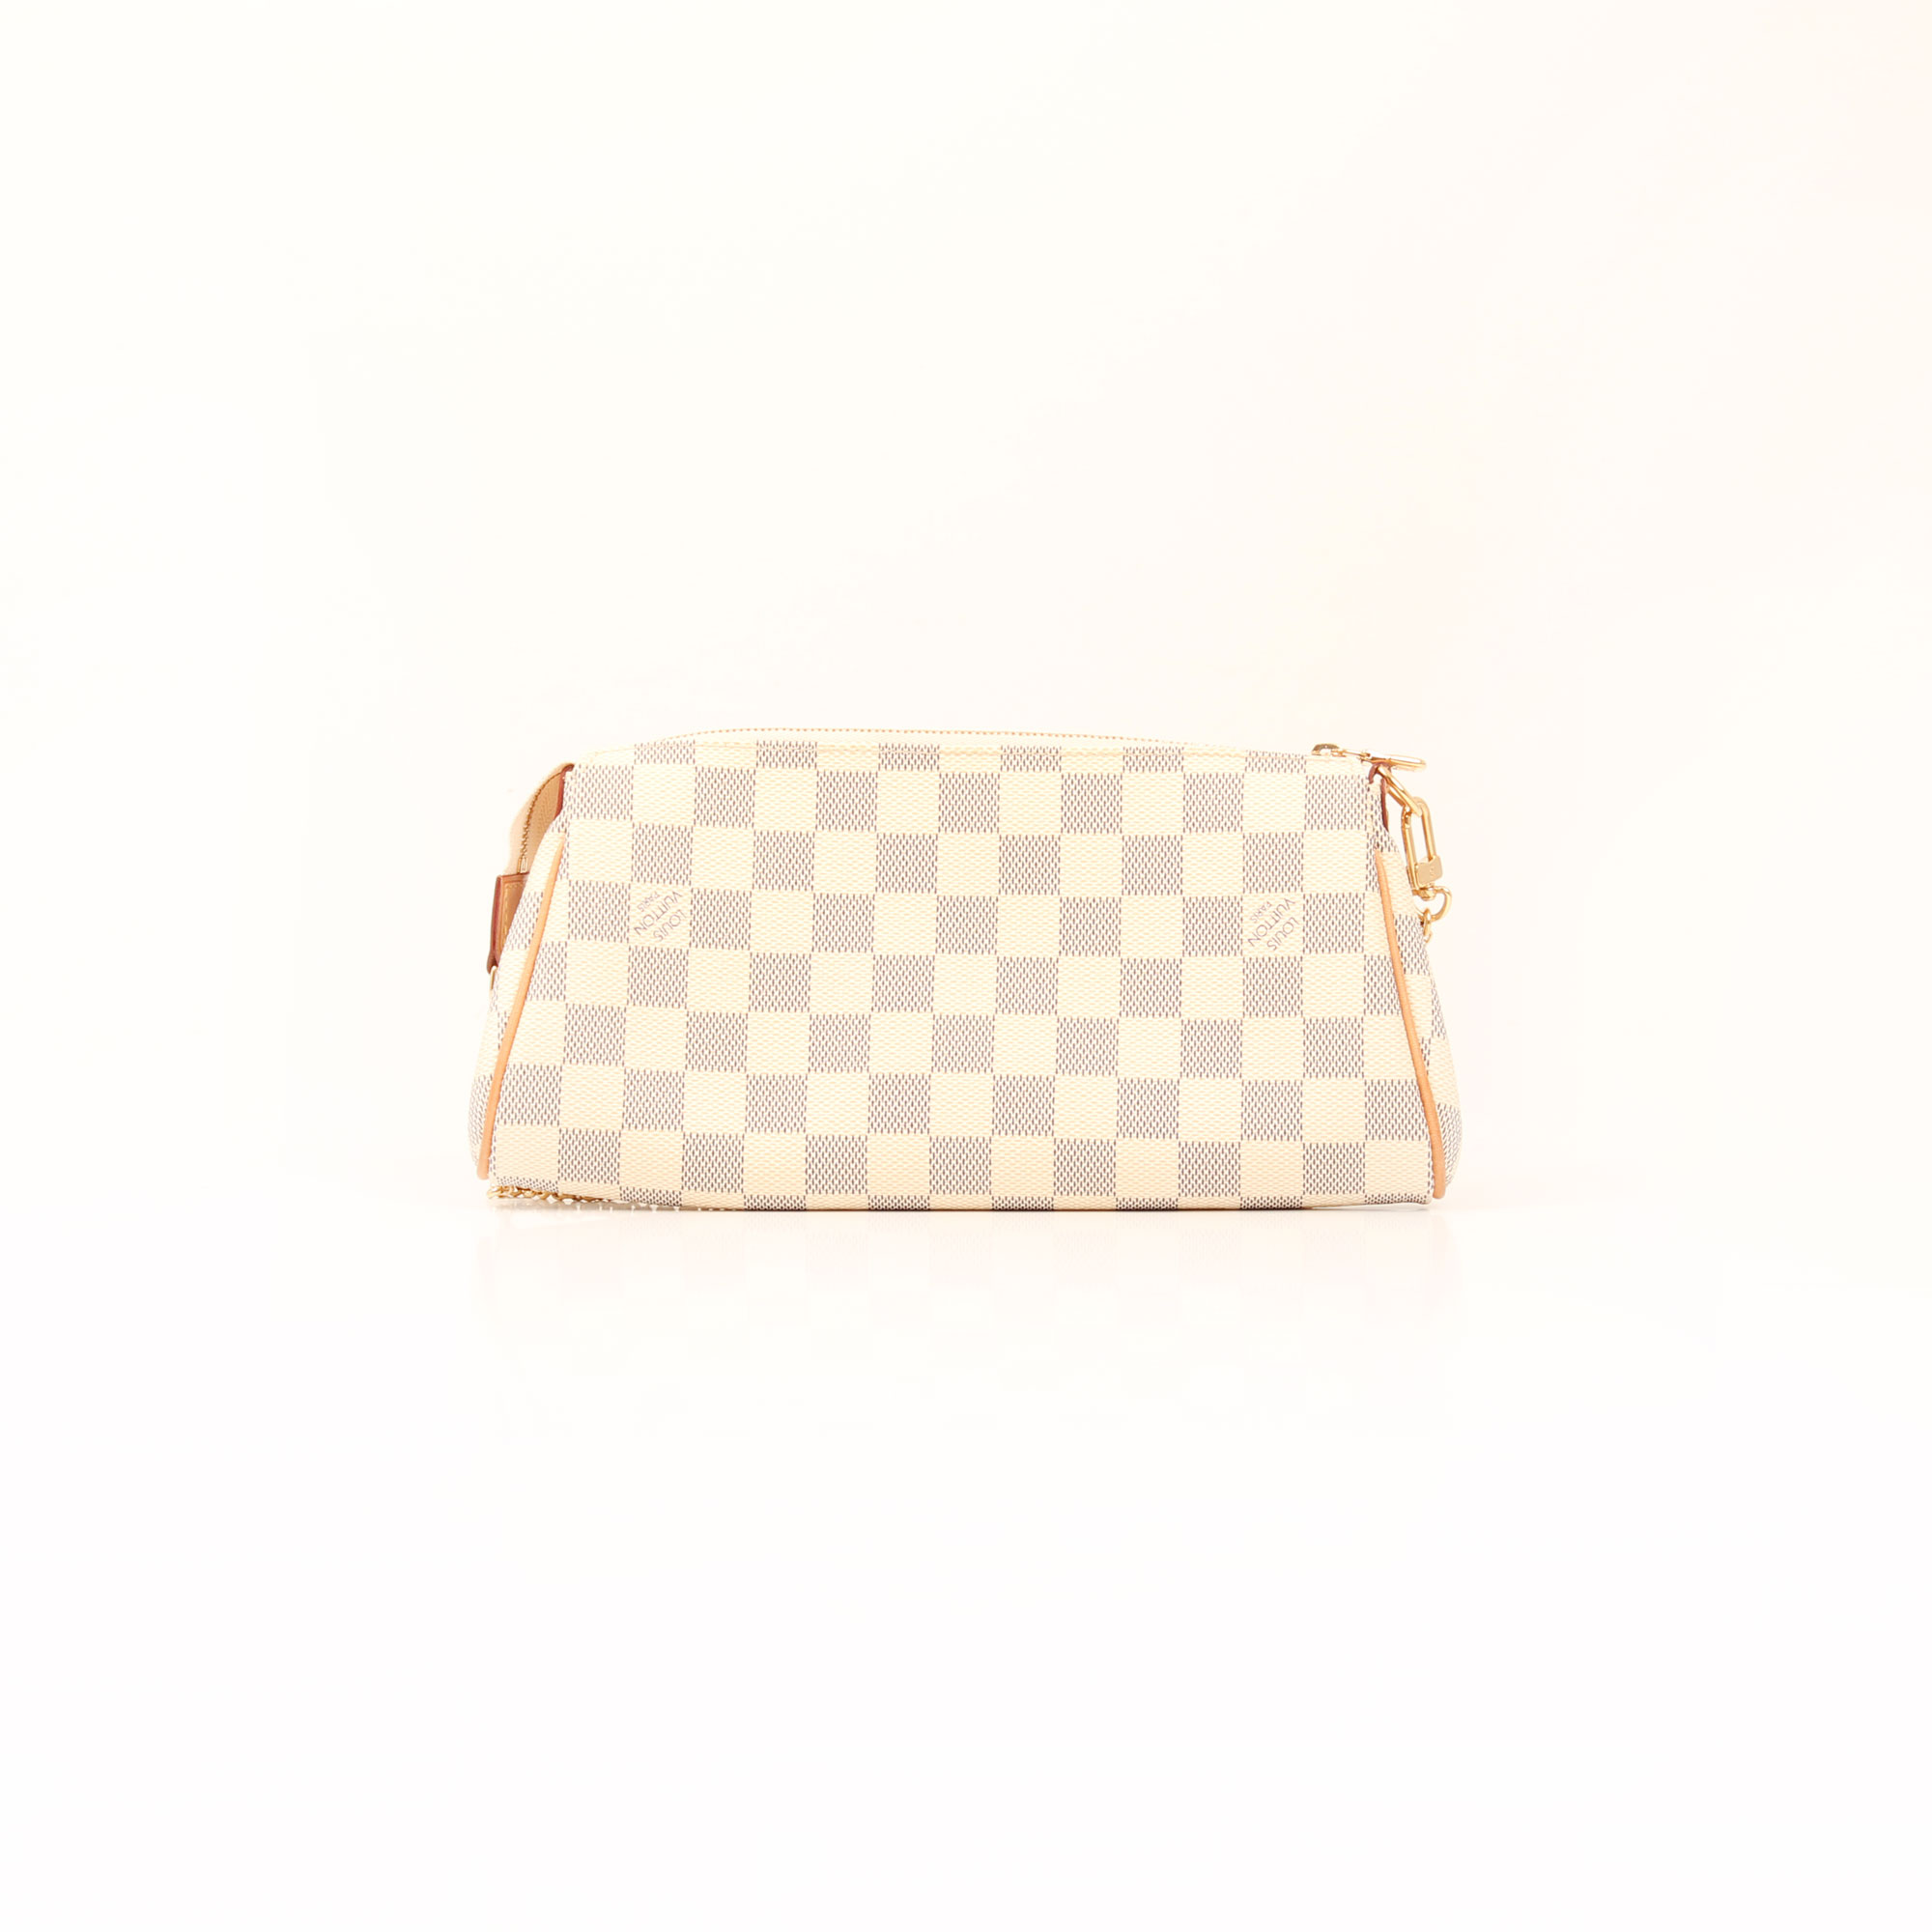 pochette-louis-vuitton-eva-damier-azur-back